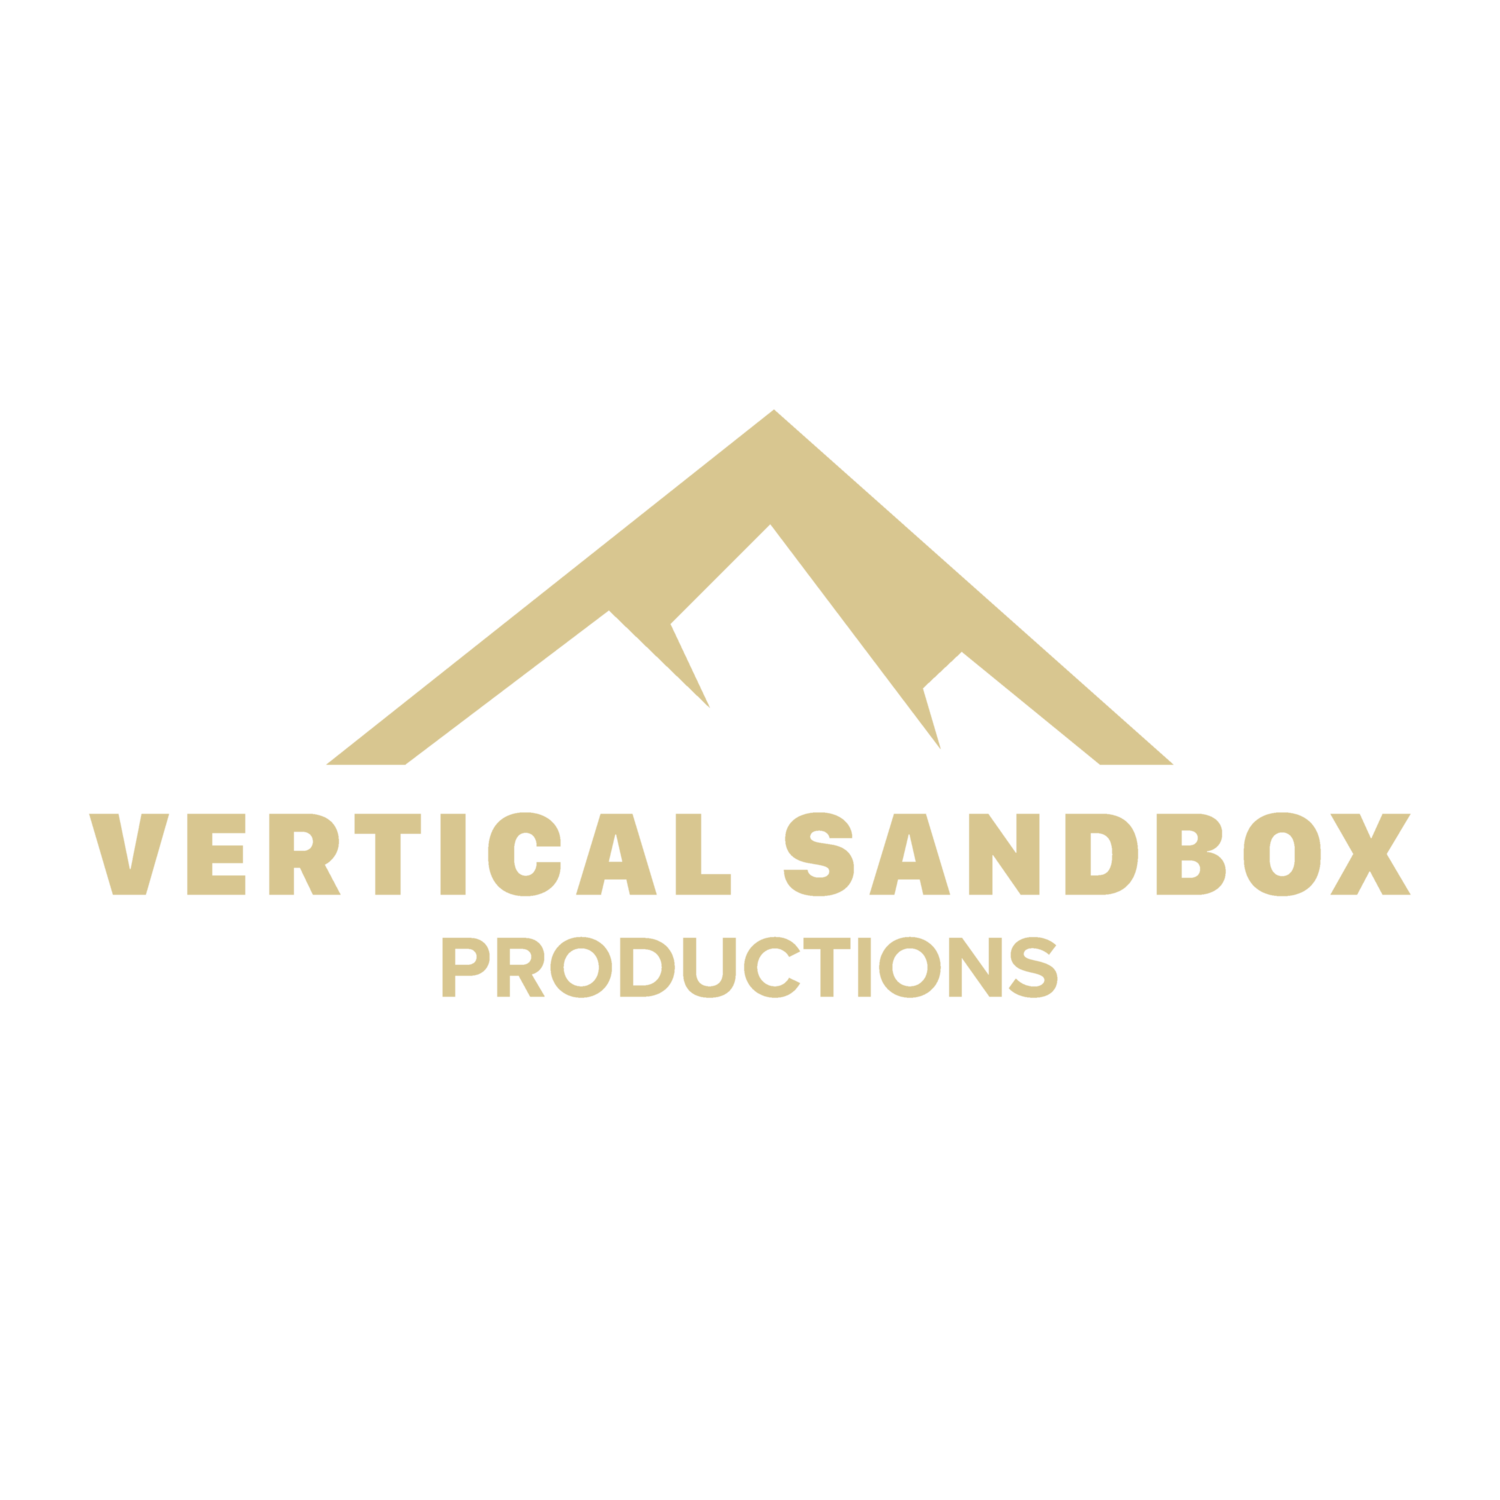 Vertical Sandbox